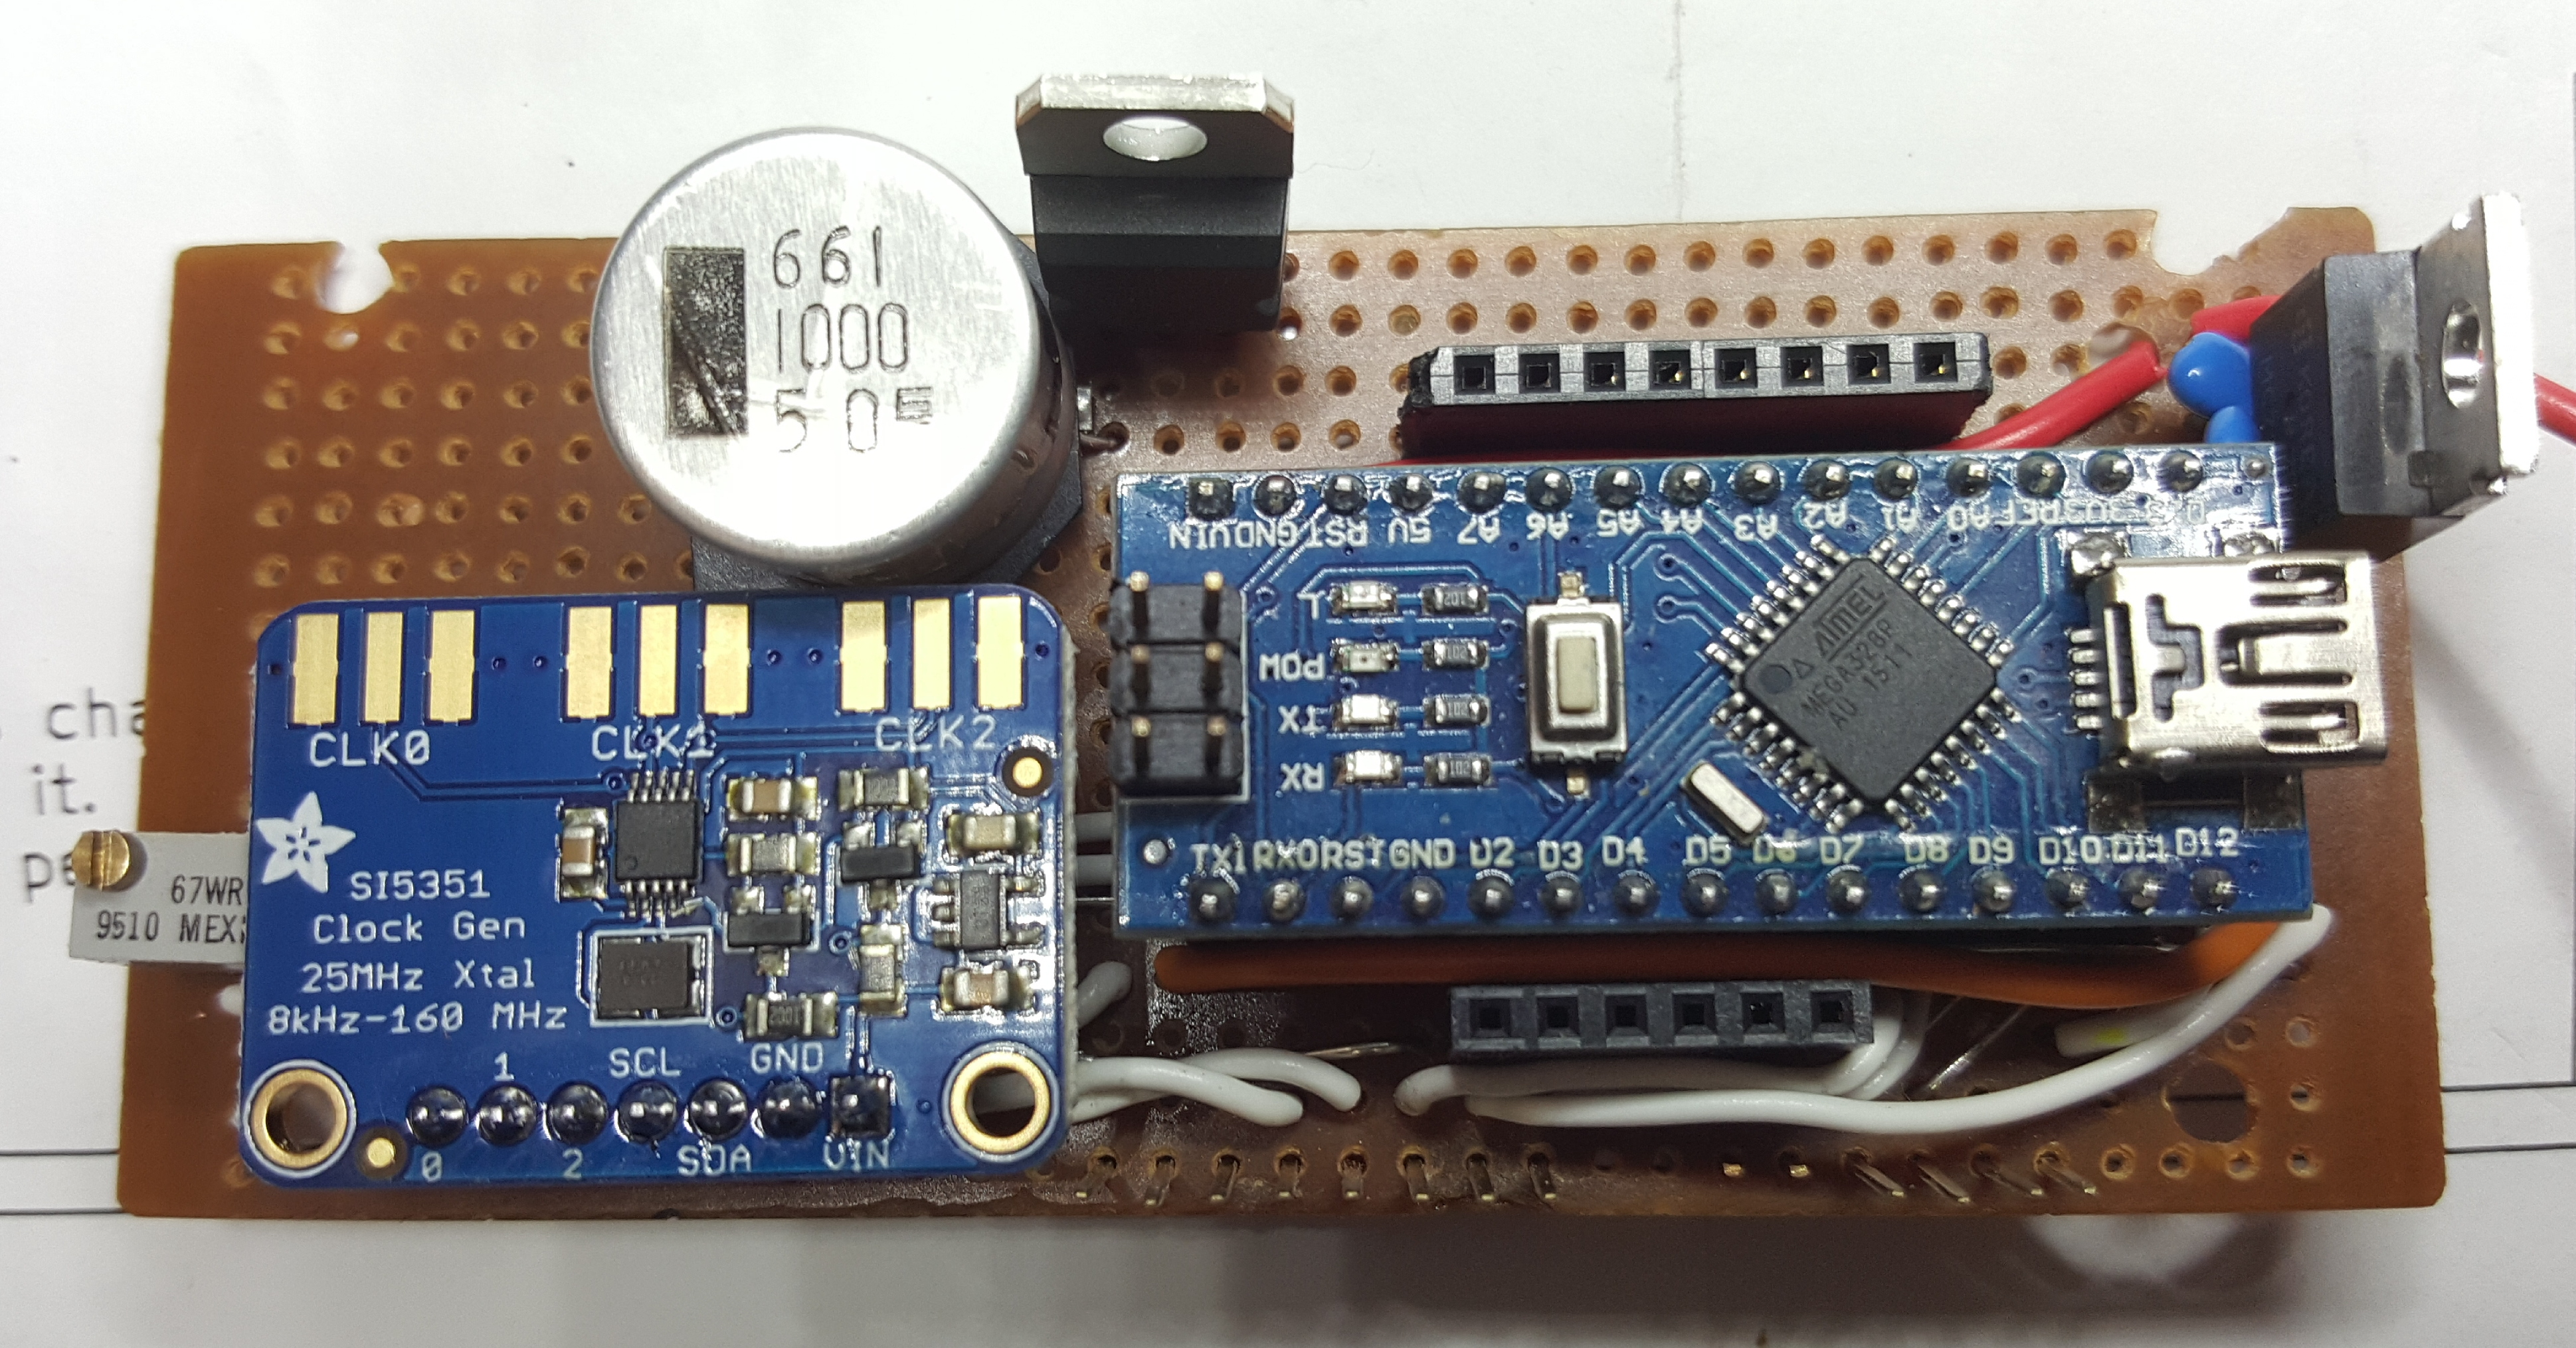 Watch furthermore 9312 moreover A Simple Si5351 Vfo And Bfo With S Meter in addition My Second Homebrew Arduinosi5351 Digital Vfo Controller further Color Sensor Module. on arduino encoder